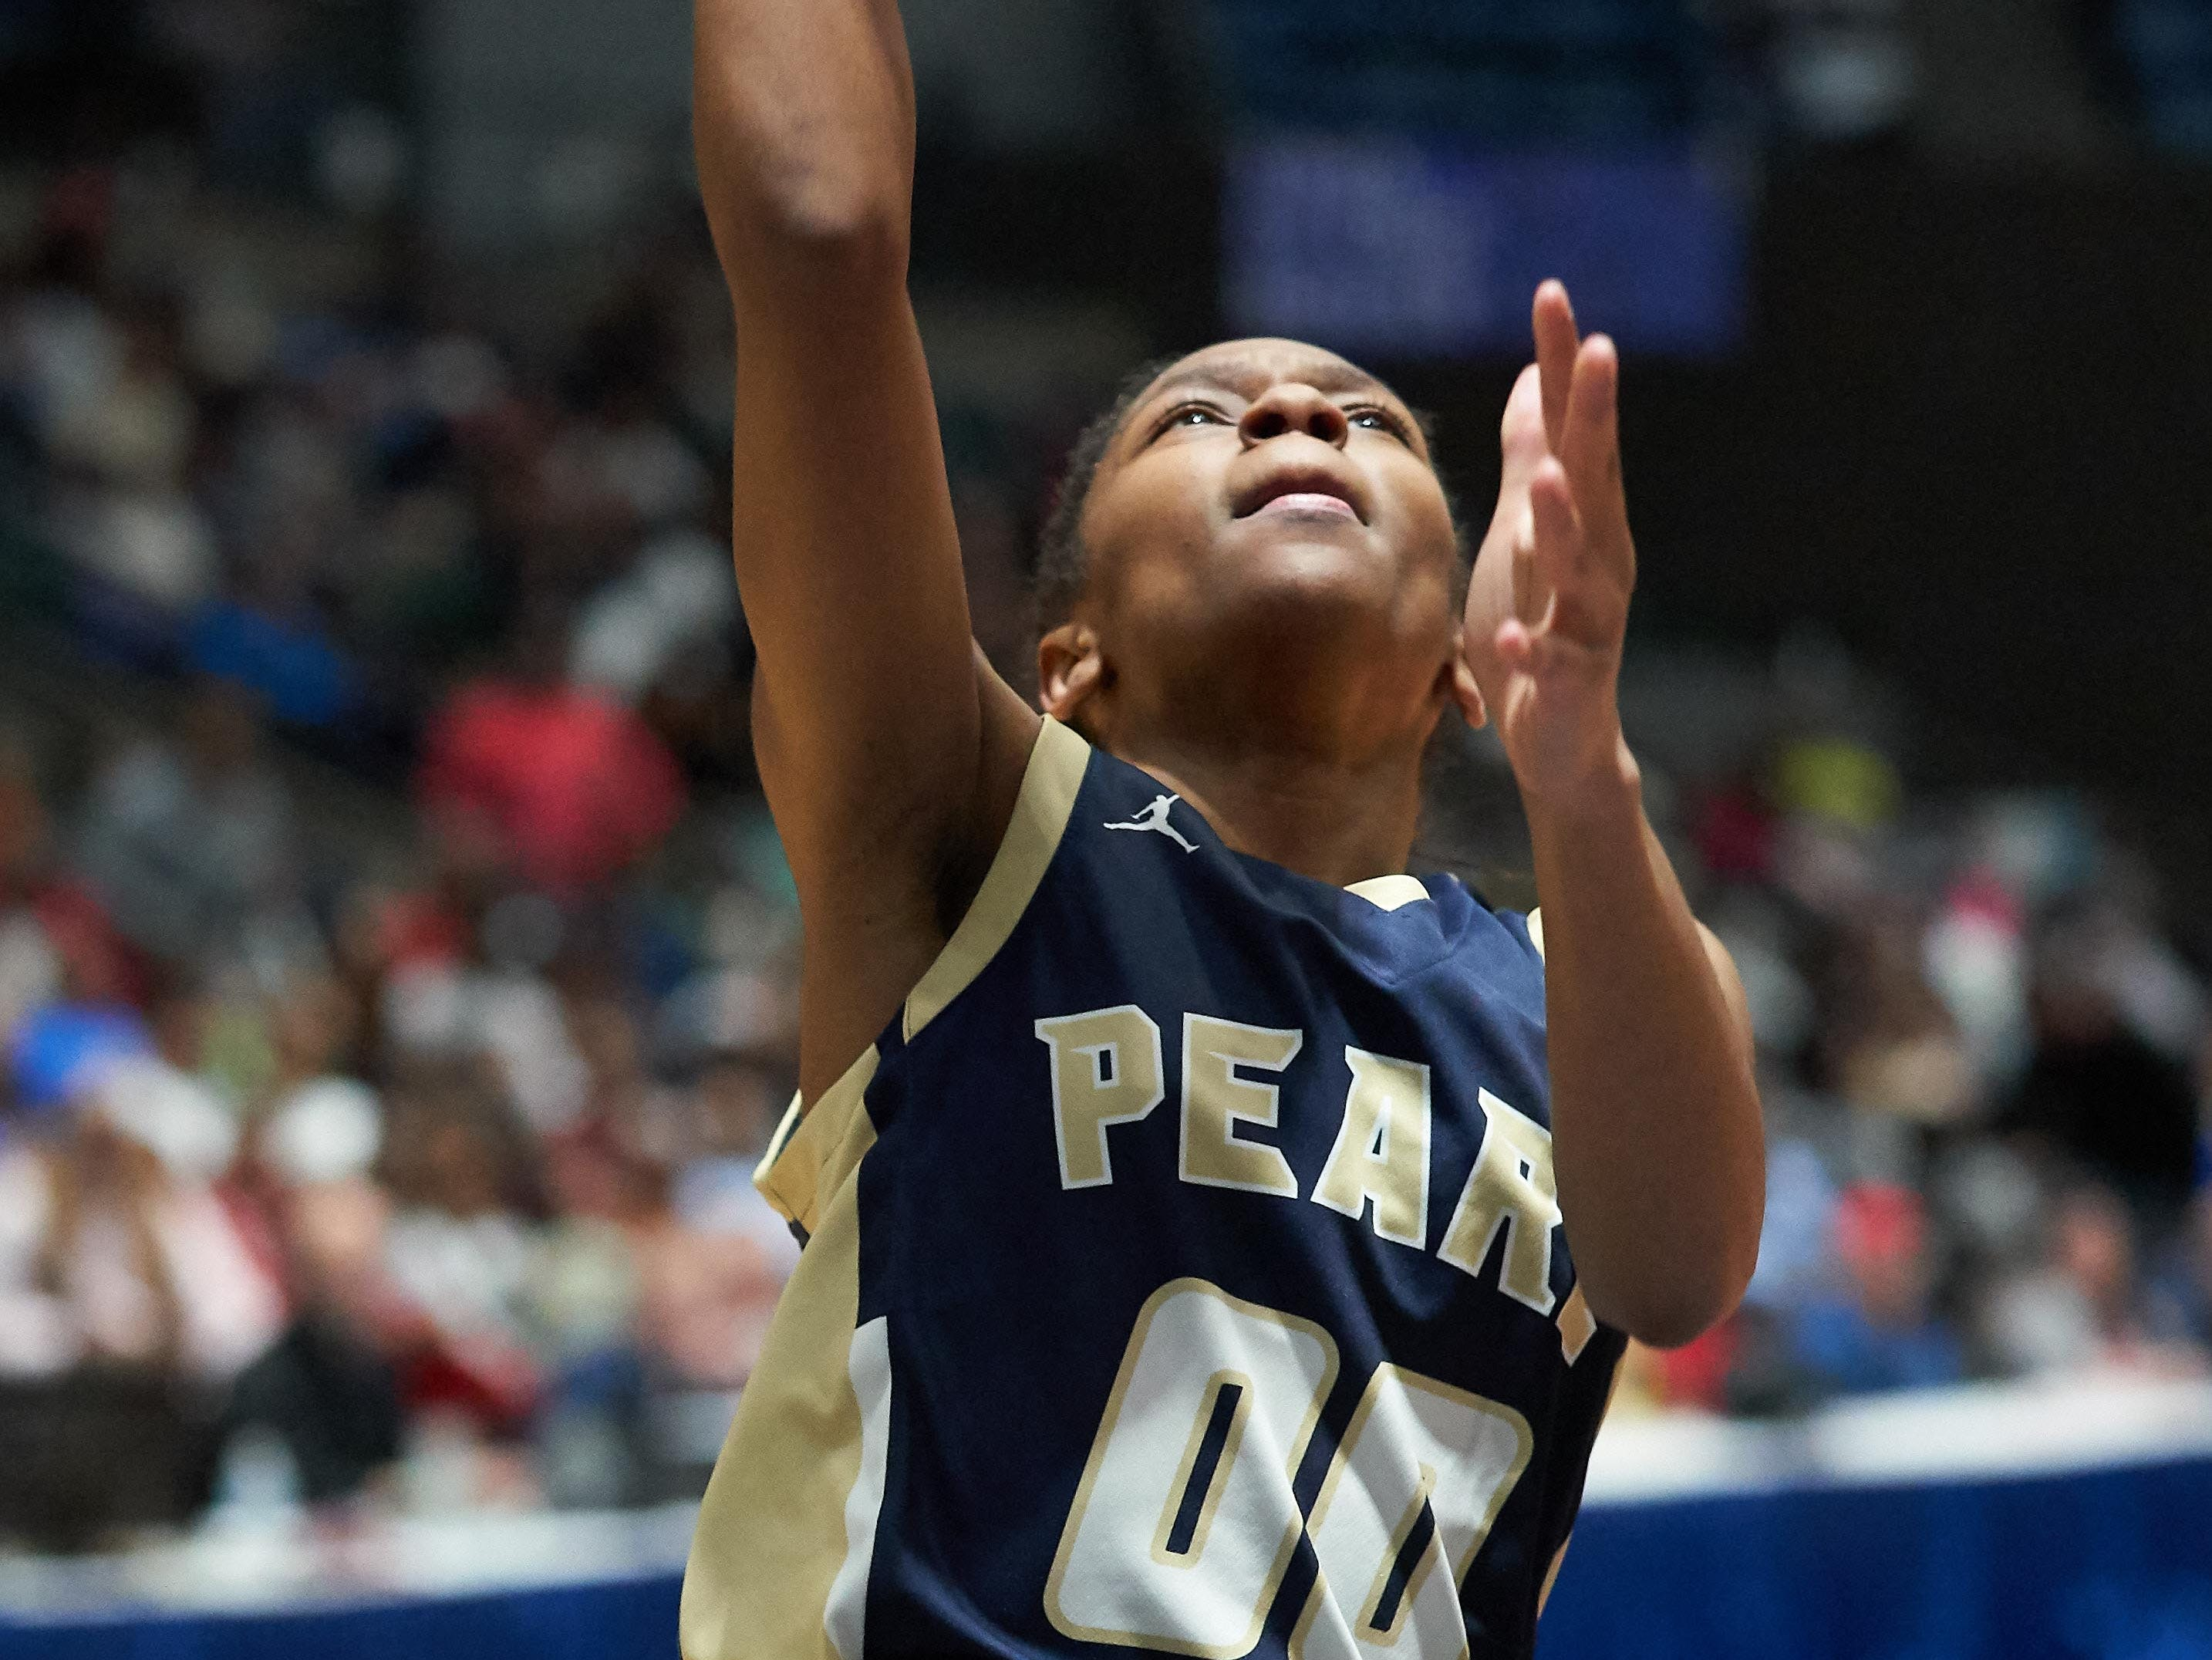 Pearl's Olivia Knight (00) shoots against Terry during the MHSAA 6A Girls Basketball Championship Finals held at the Mississippi Coliseum in Jackson, MS, Saturday March 9th, 2019.(Bob Smith)